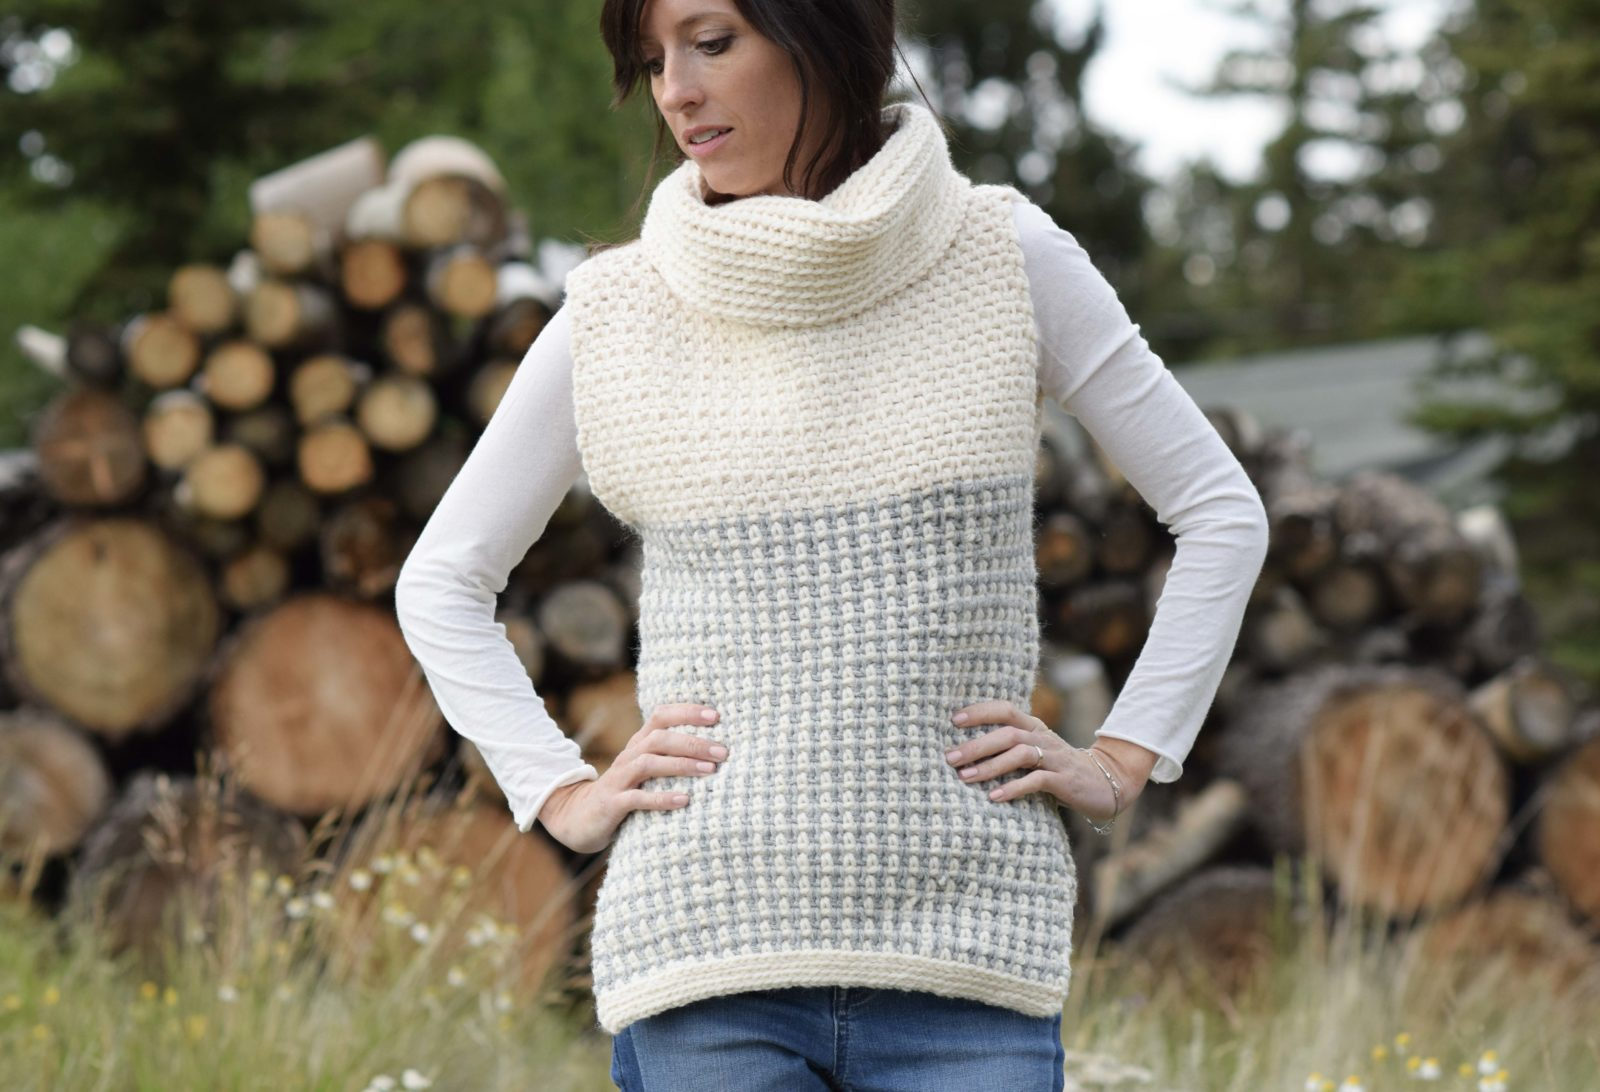 Easy crochet cowled sweater vest mama in a stitch its making me think of cozy fires and more cozy knit and crochet days bankloansurffo Images